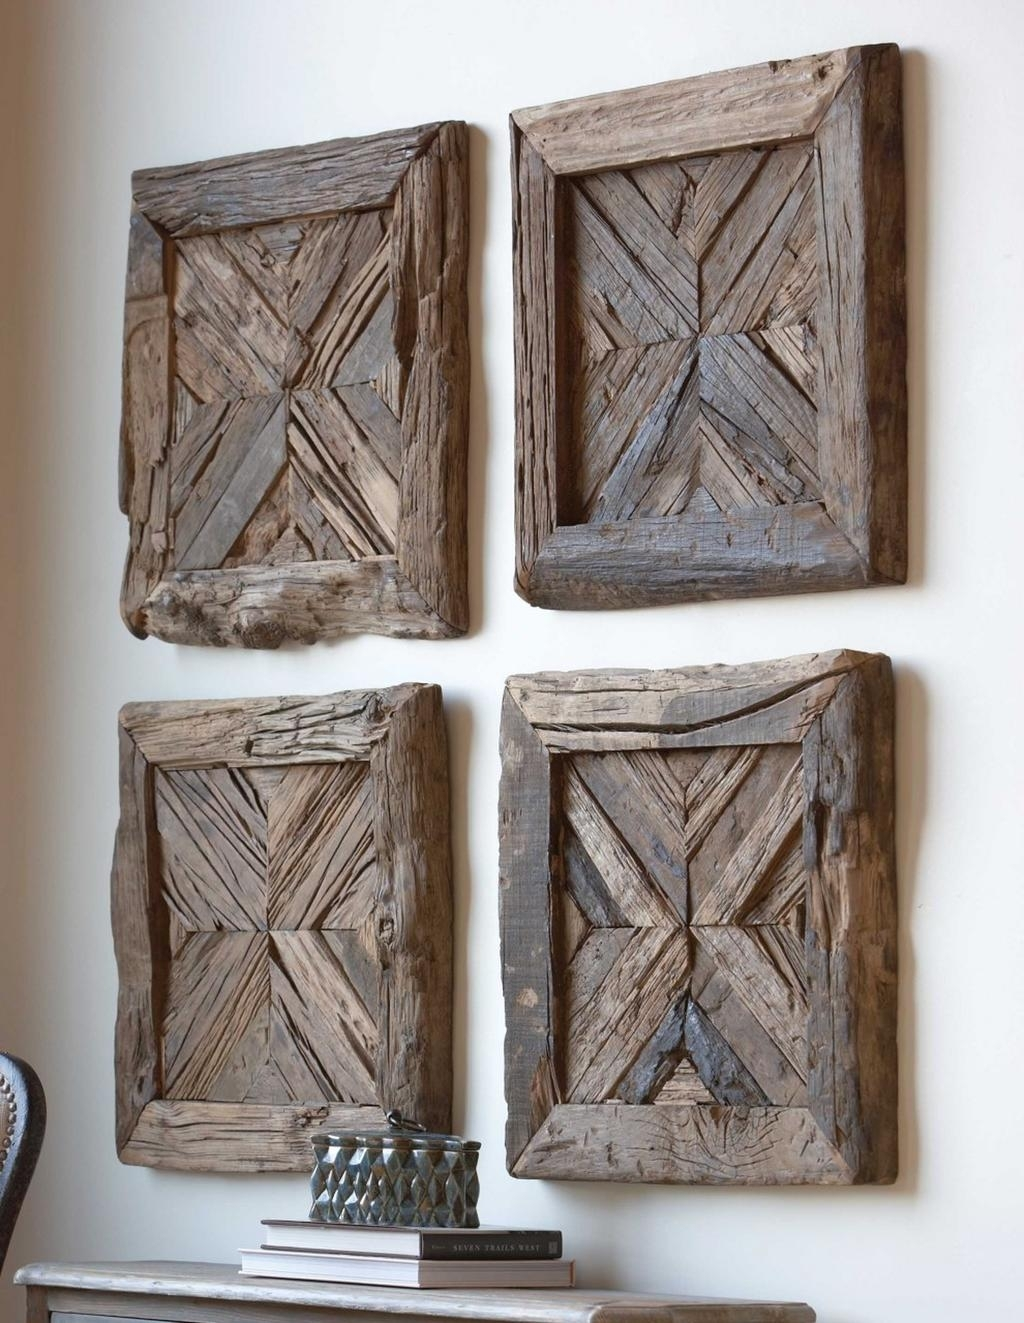 63299+ Great Examples Of Rustic Wall Art Furniture Home Design Ideas For Latest Rustic Wall Art (Gallery 4 of 15)